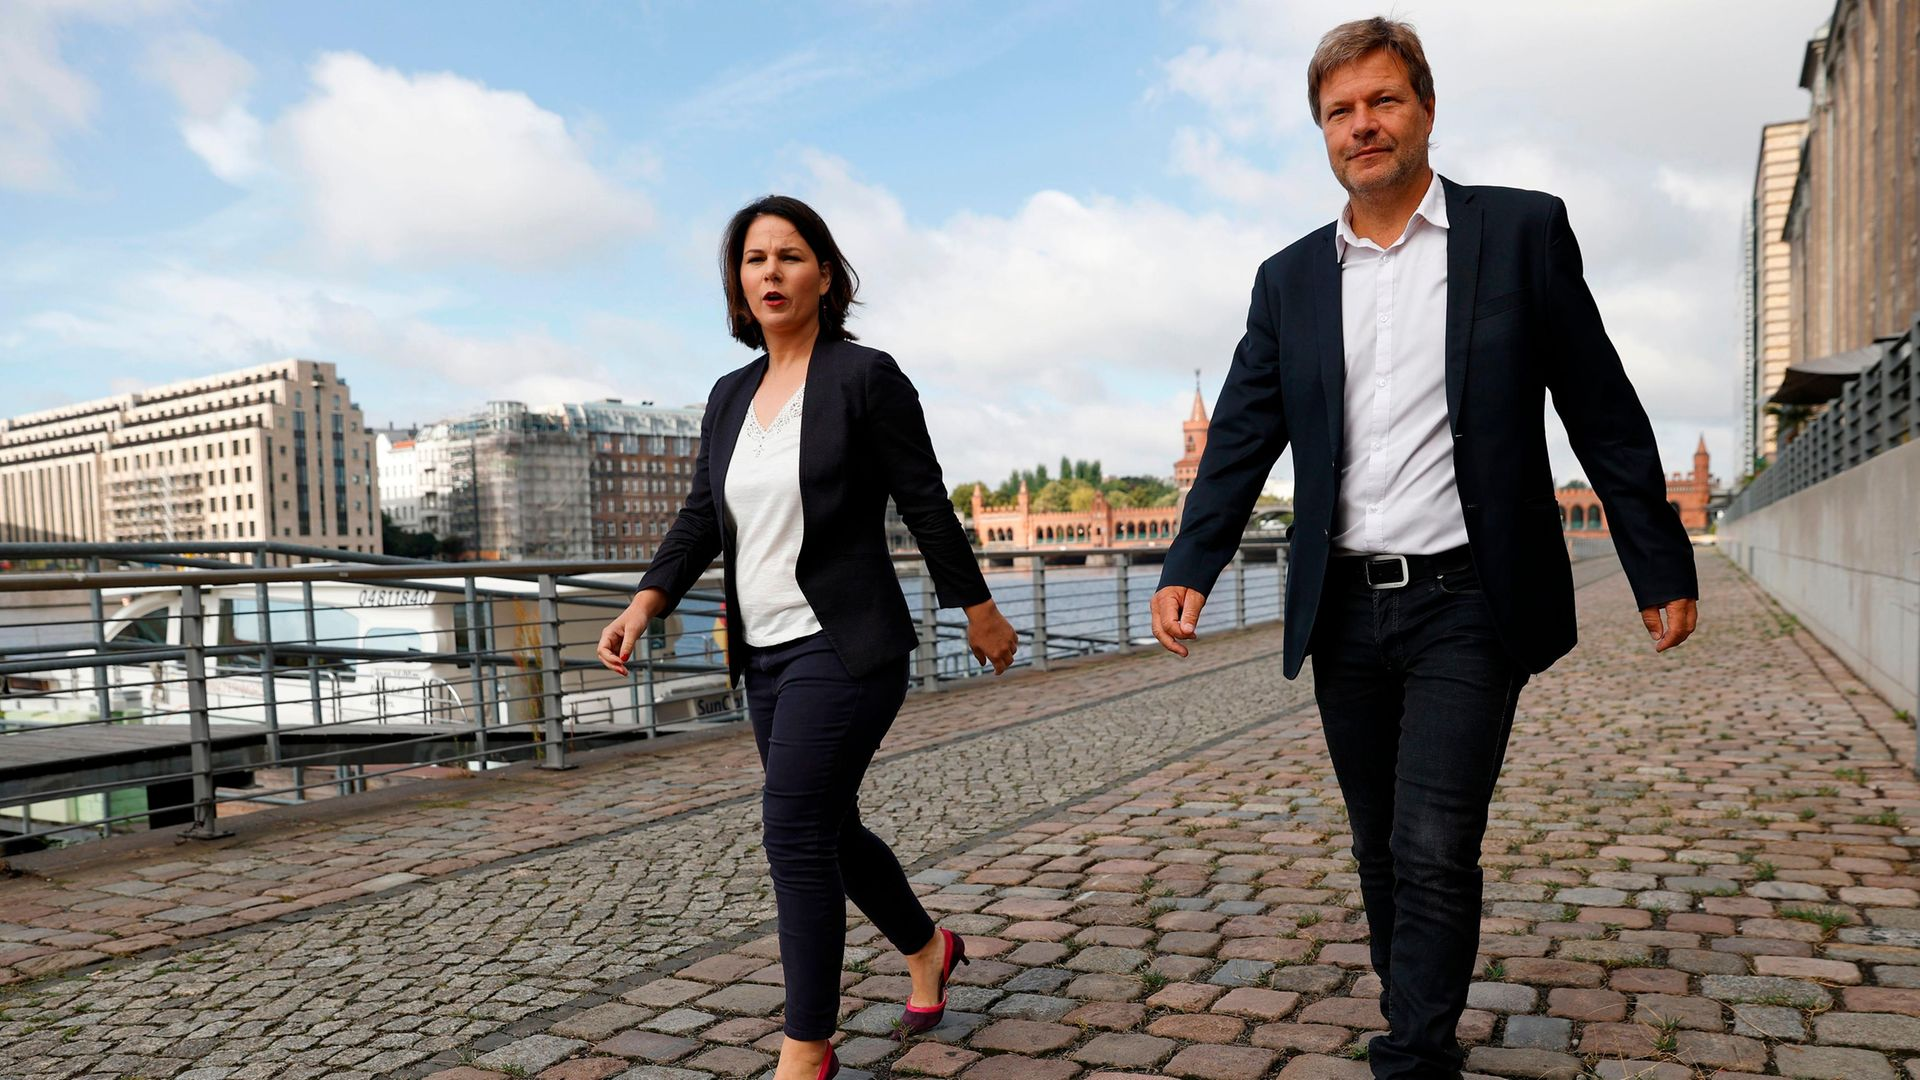 Co-leaders of Germany's Green Party Annalena Baerbock and Robert Habeck walk along Berlin's river Spree - Credit: AFP via Getty Images